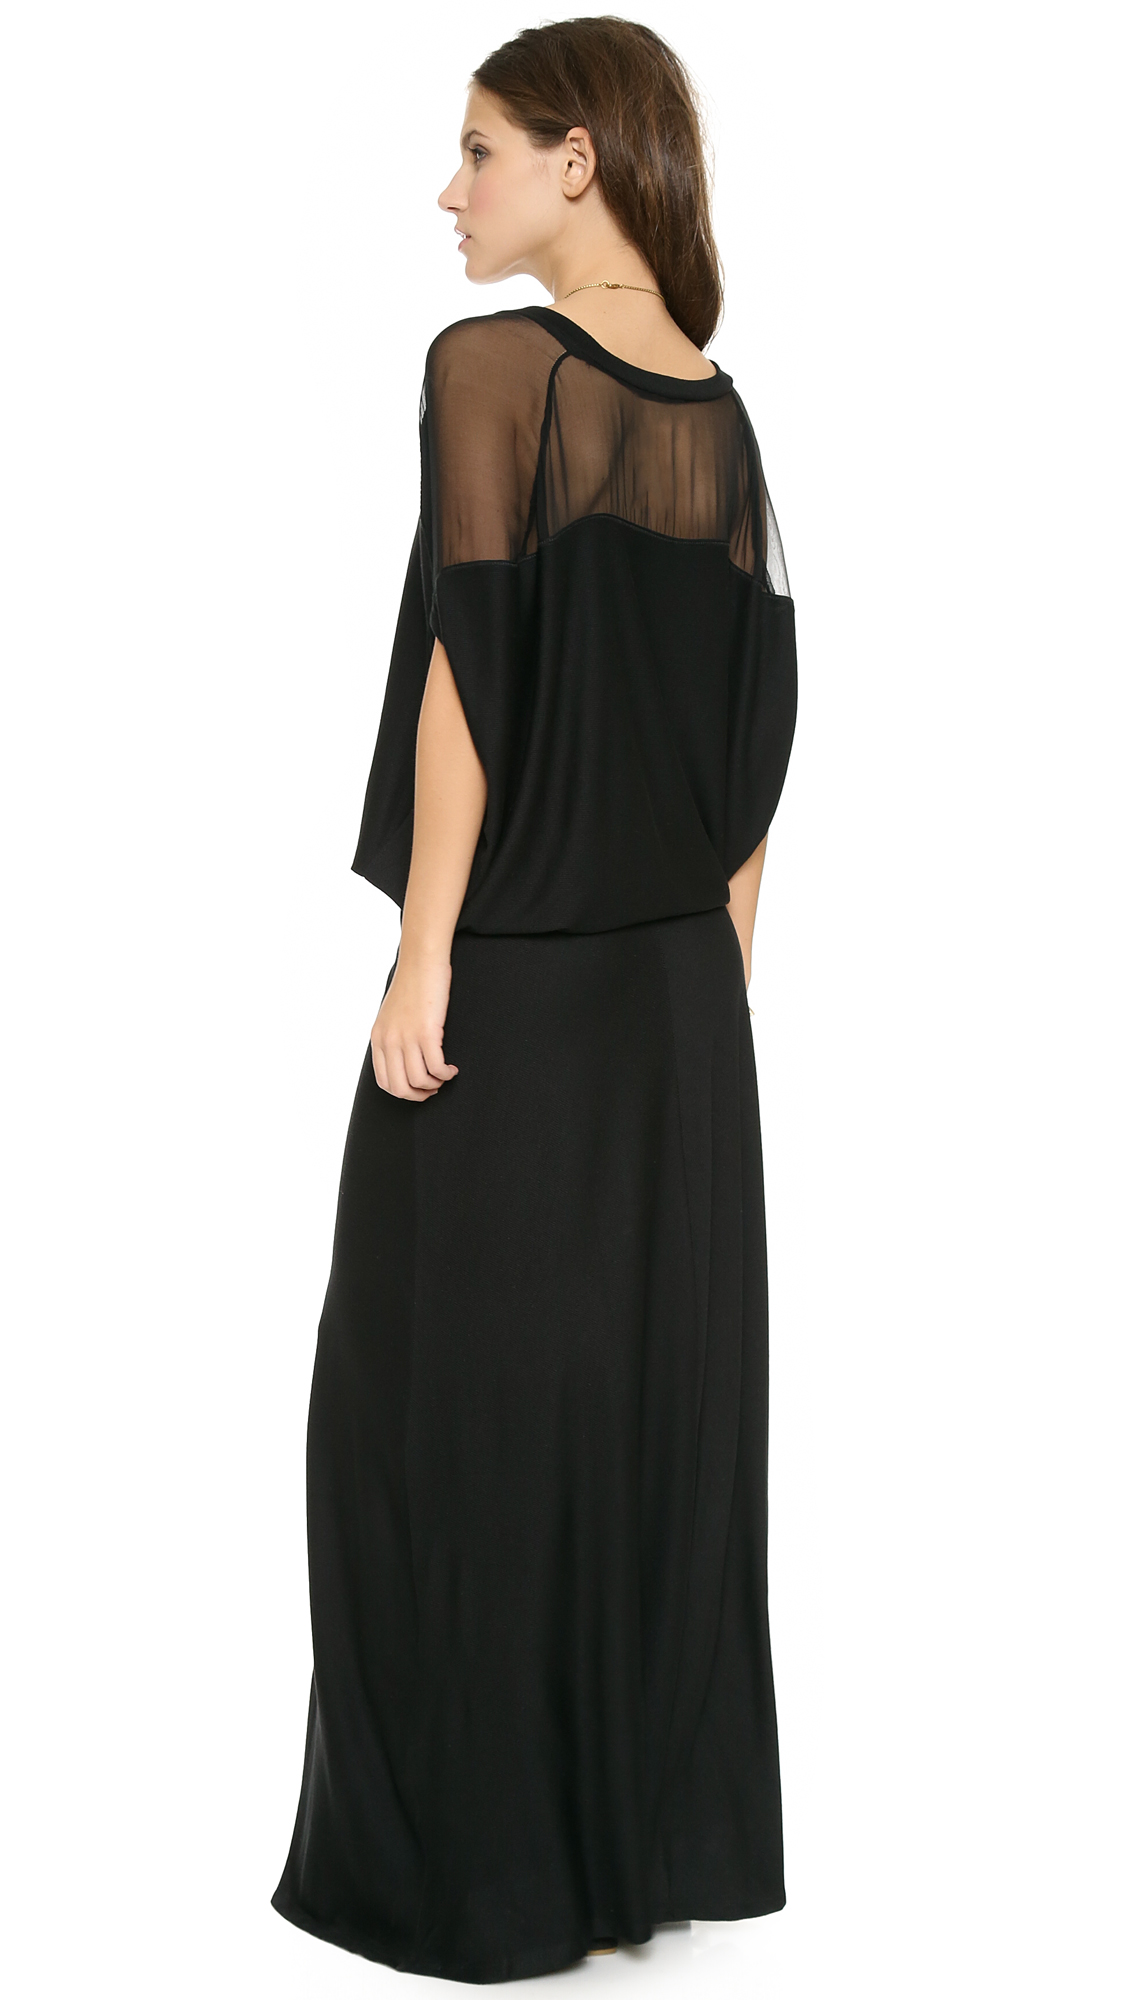 Heather blouson maxi dress